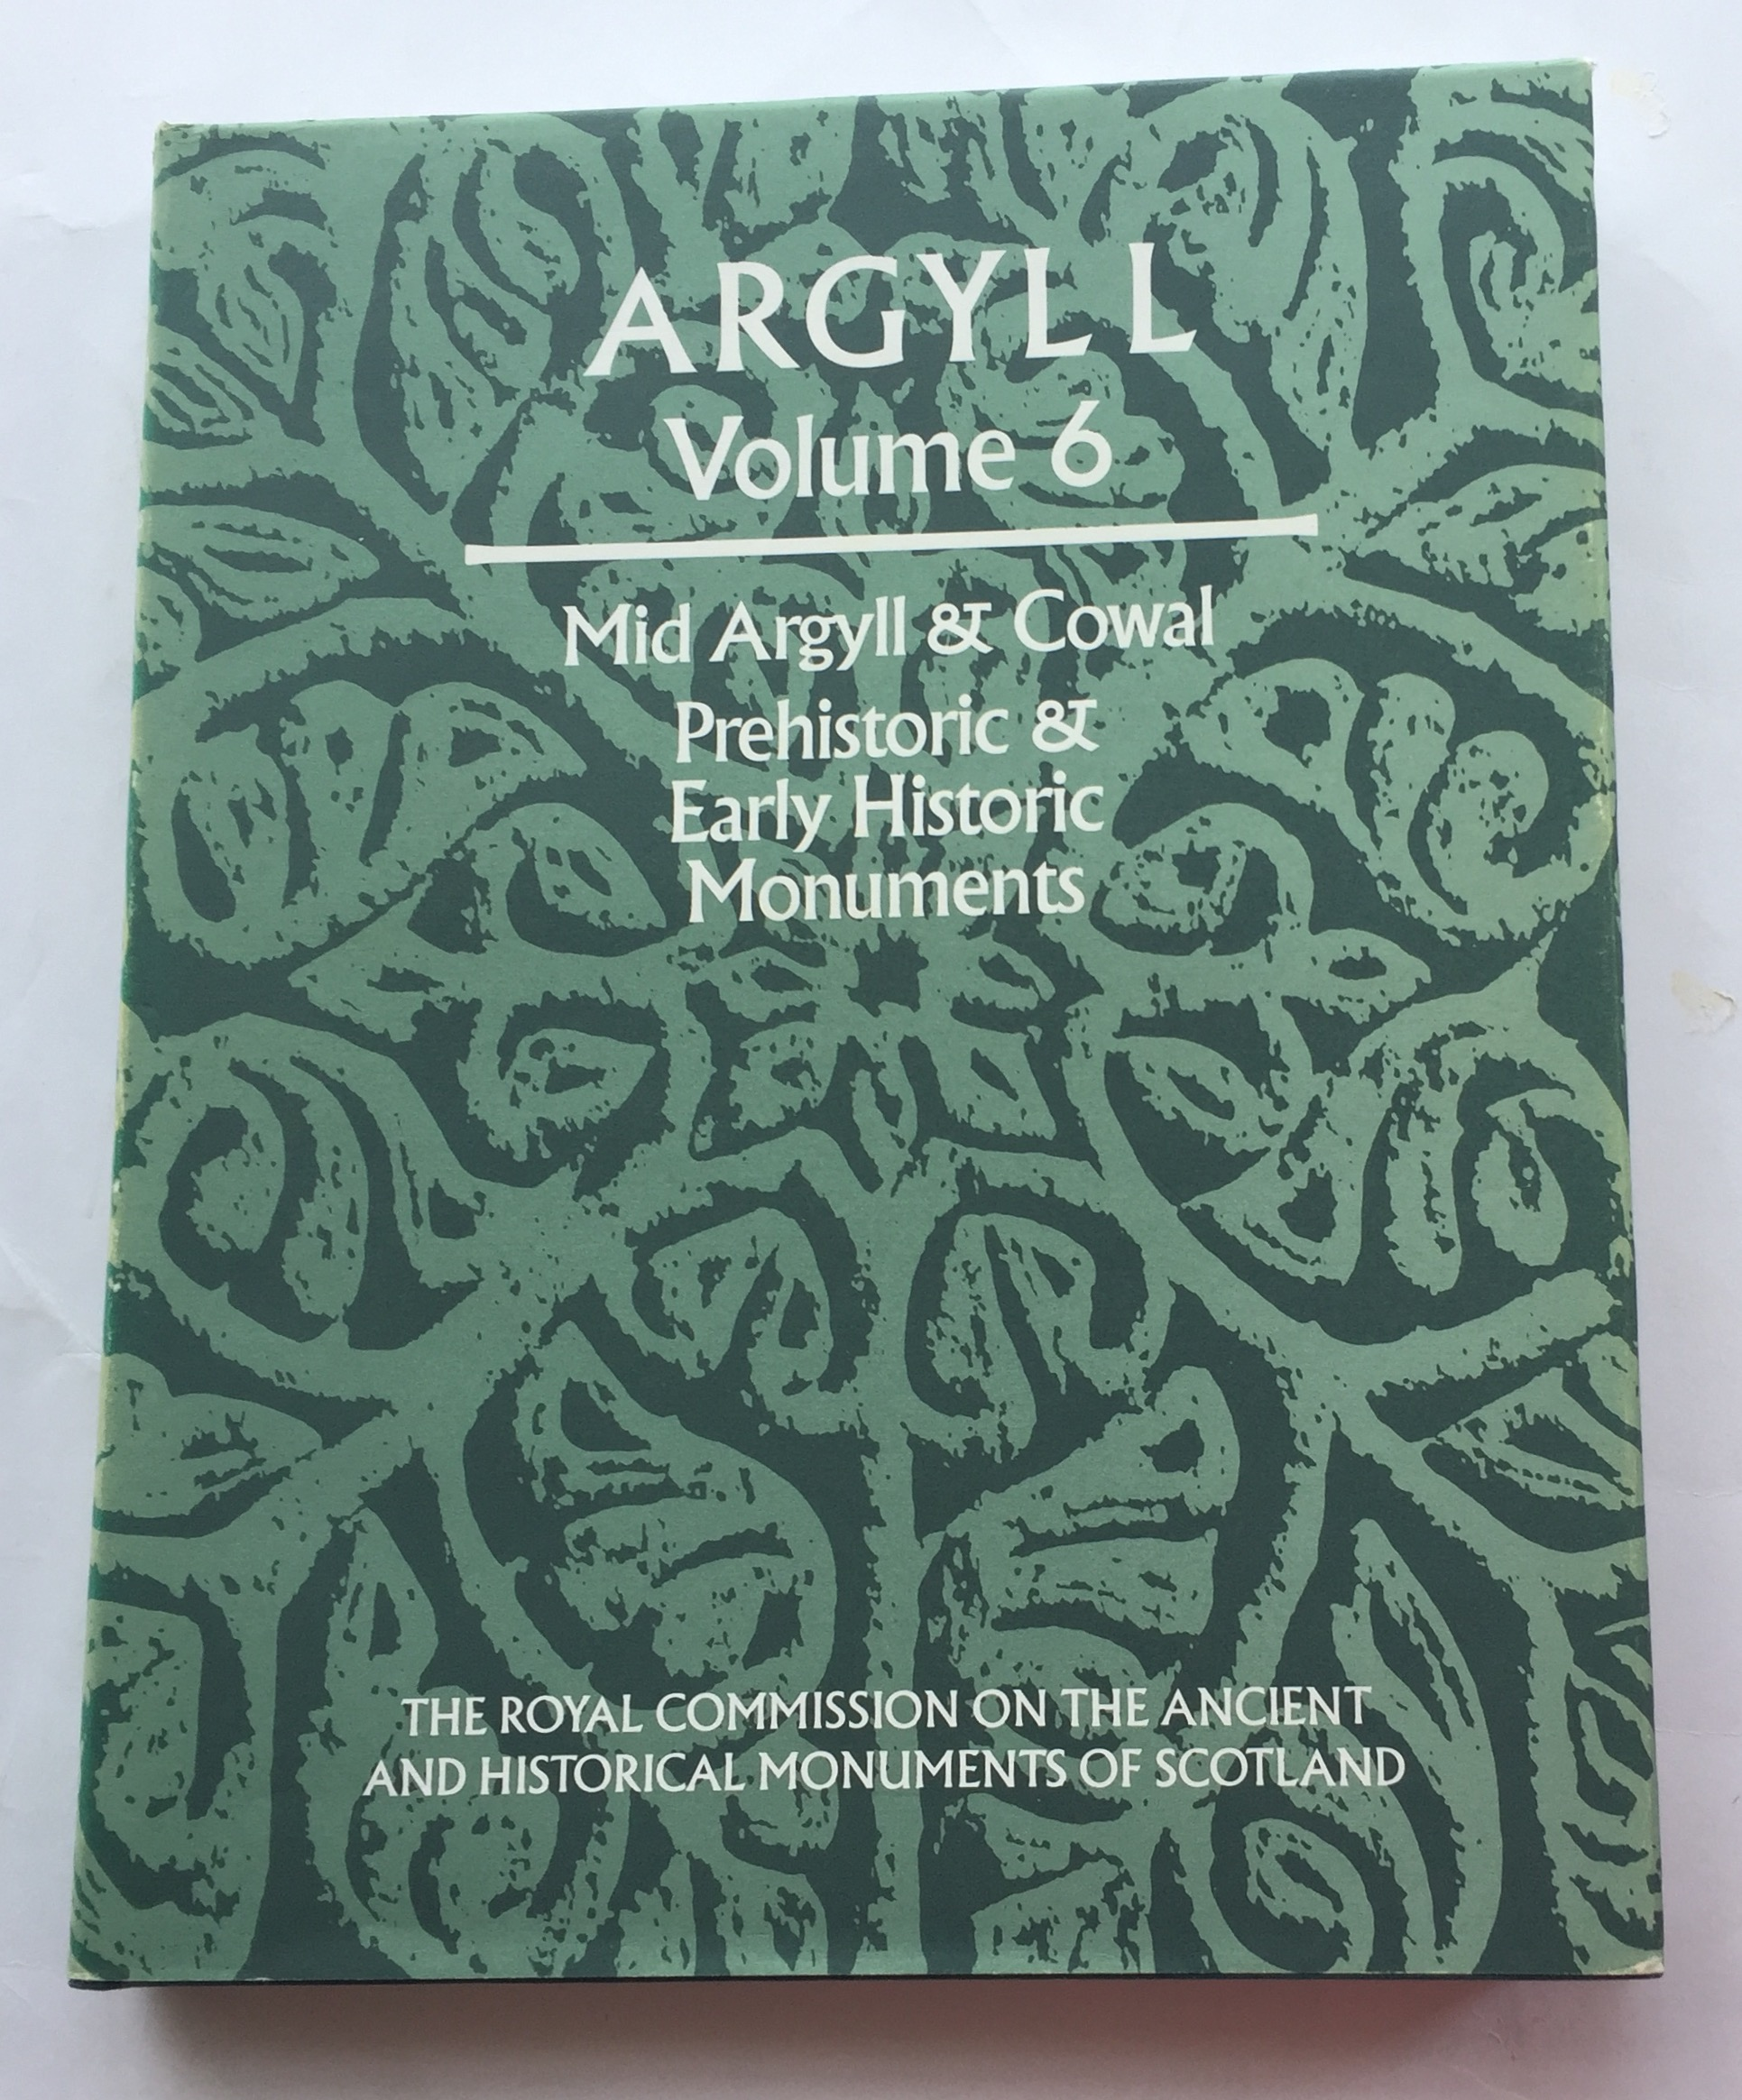 Argyll: an inventory of the ancient monuments, Volume 6 Mid Argyll & Cowall, Prehistoric & Early Historic Monuments :